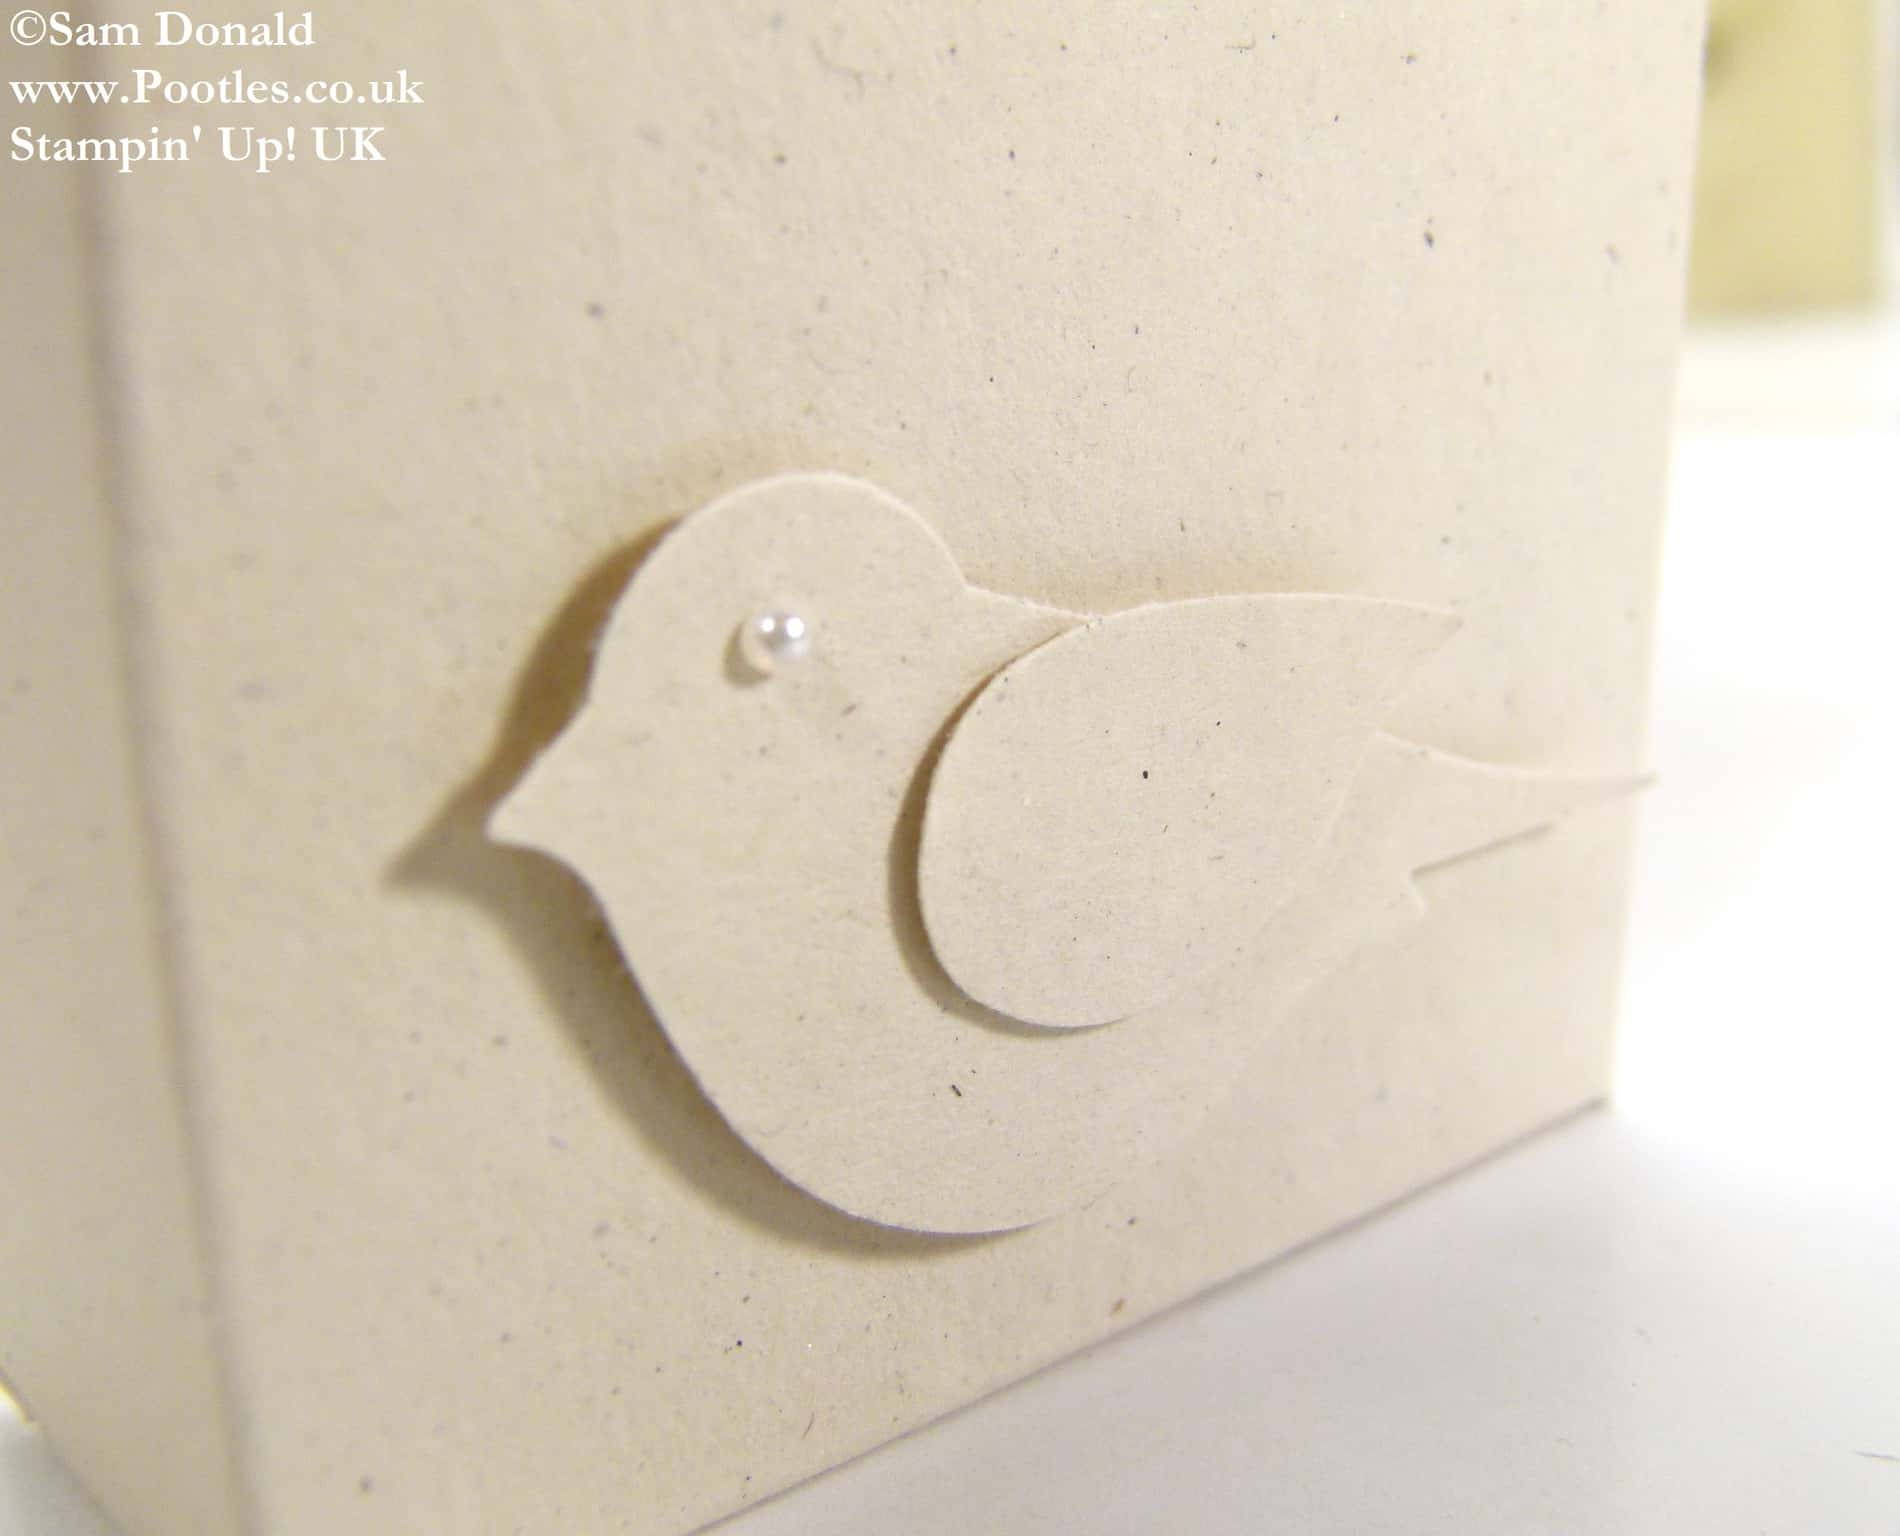 POOTLES Stampin Up UK Inspired Bird Gift Box Tutorial